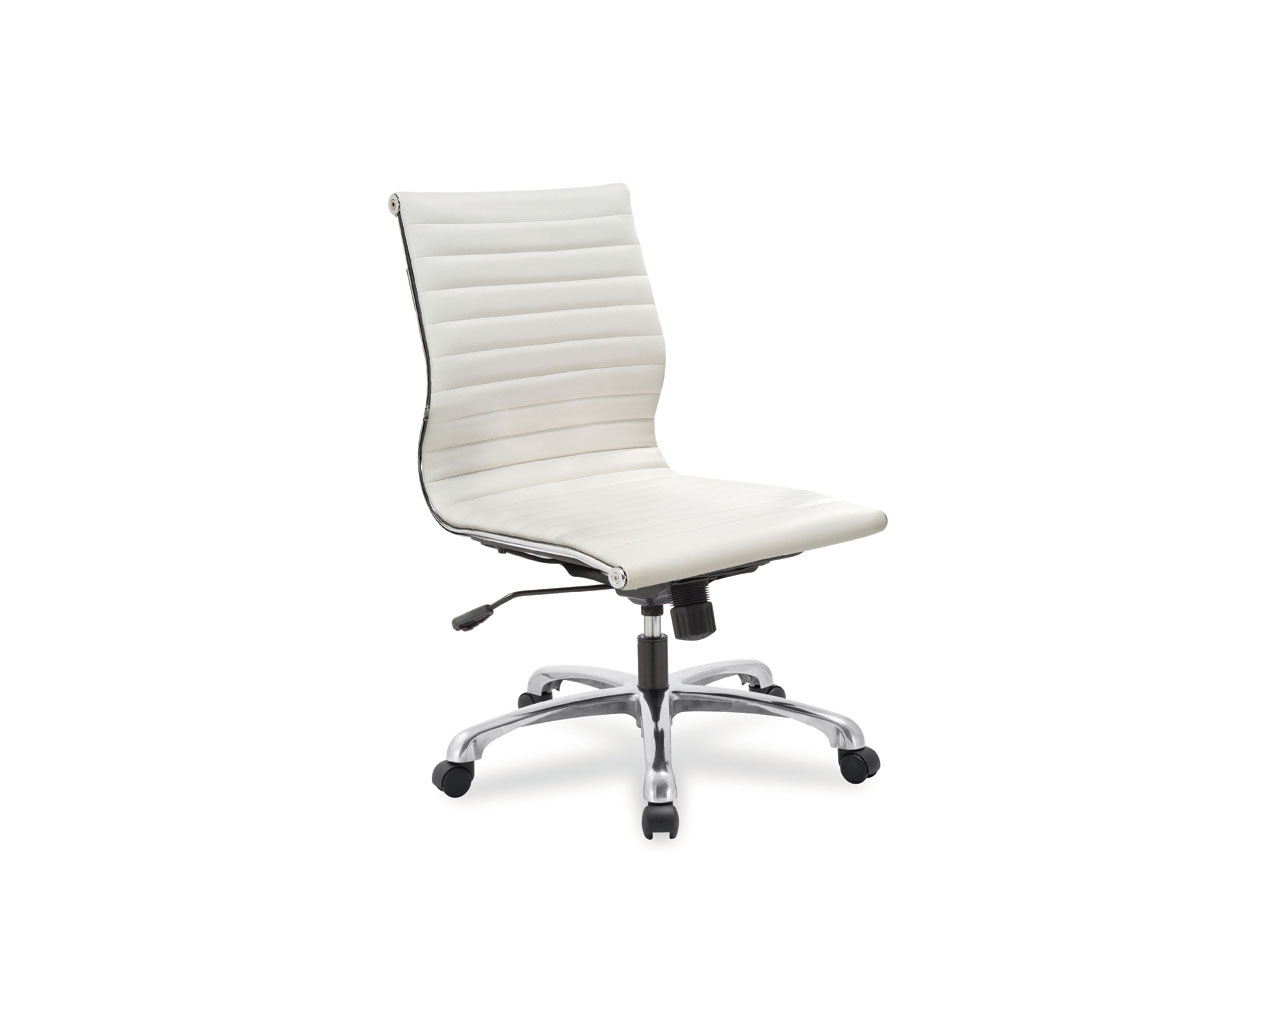 ergonomic chair without arms explanation nova mid back